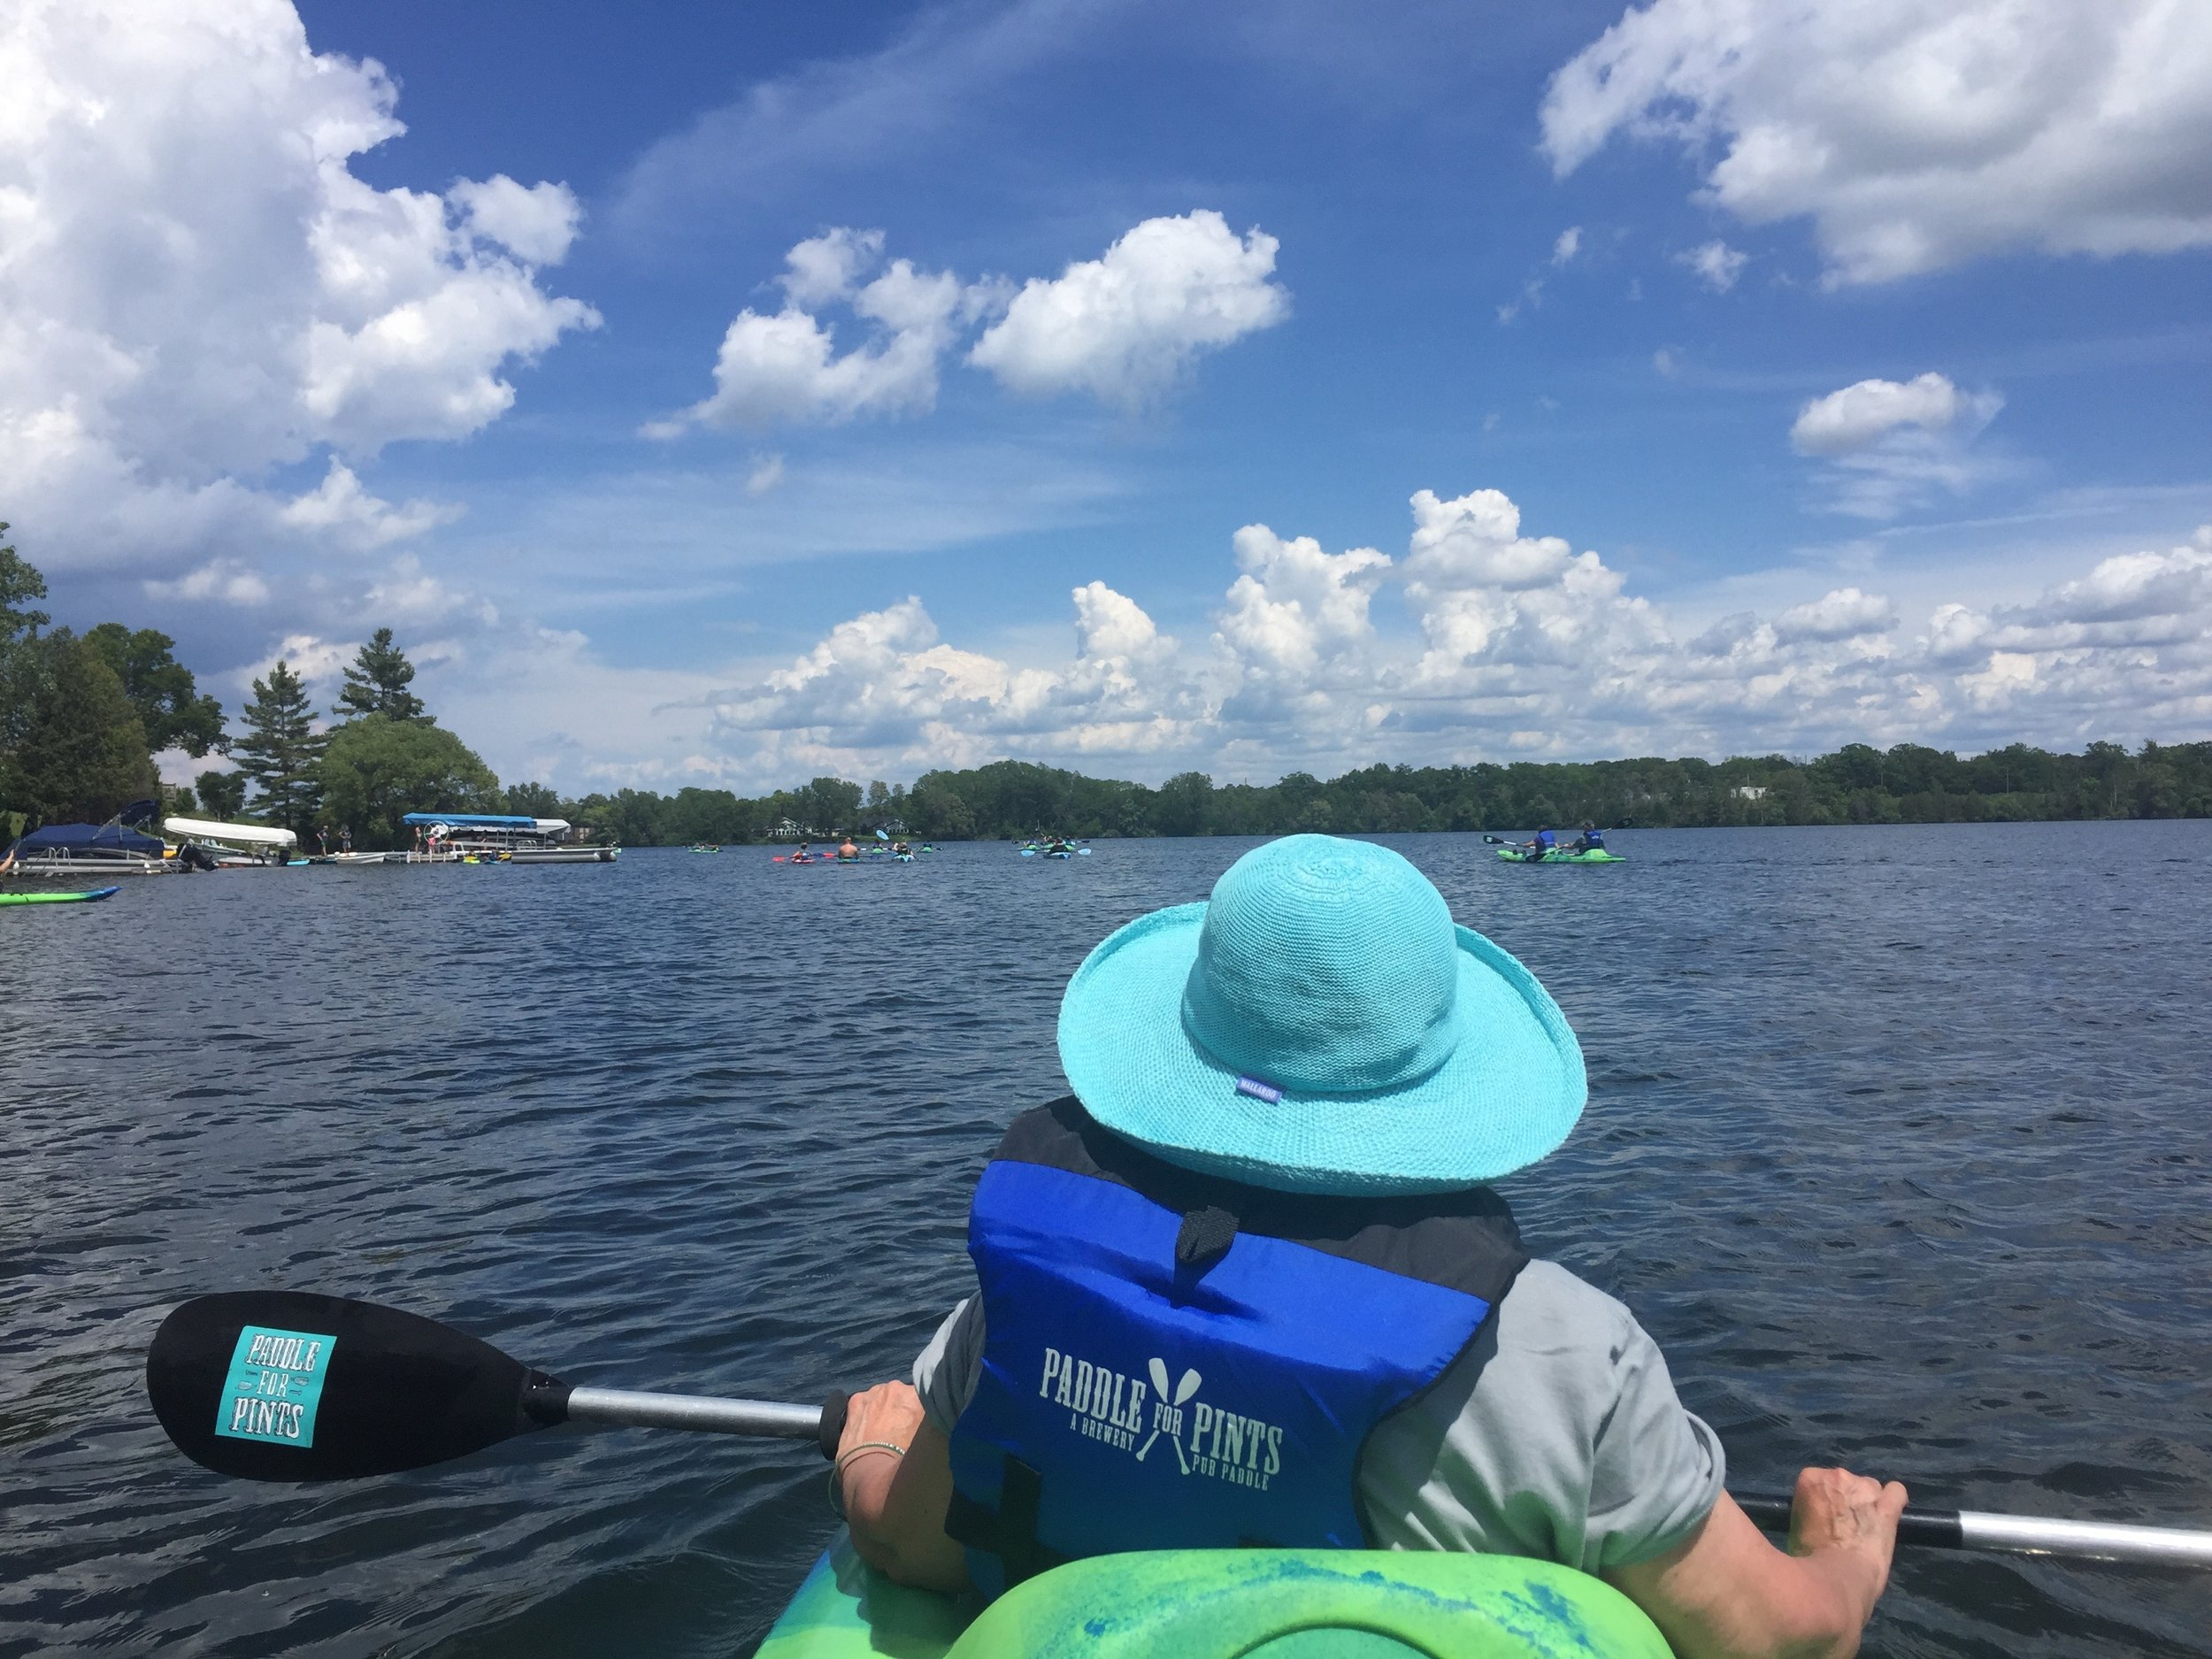 """The tour began on the Boardman Lake, where the group did the """"Paddle for Pints"""" on a sunny Friday afternoon. Paddlers experience different TC brew pubs via a water trail."""